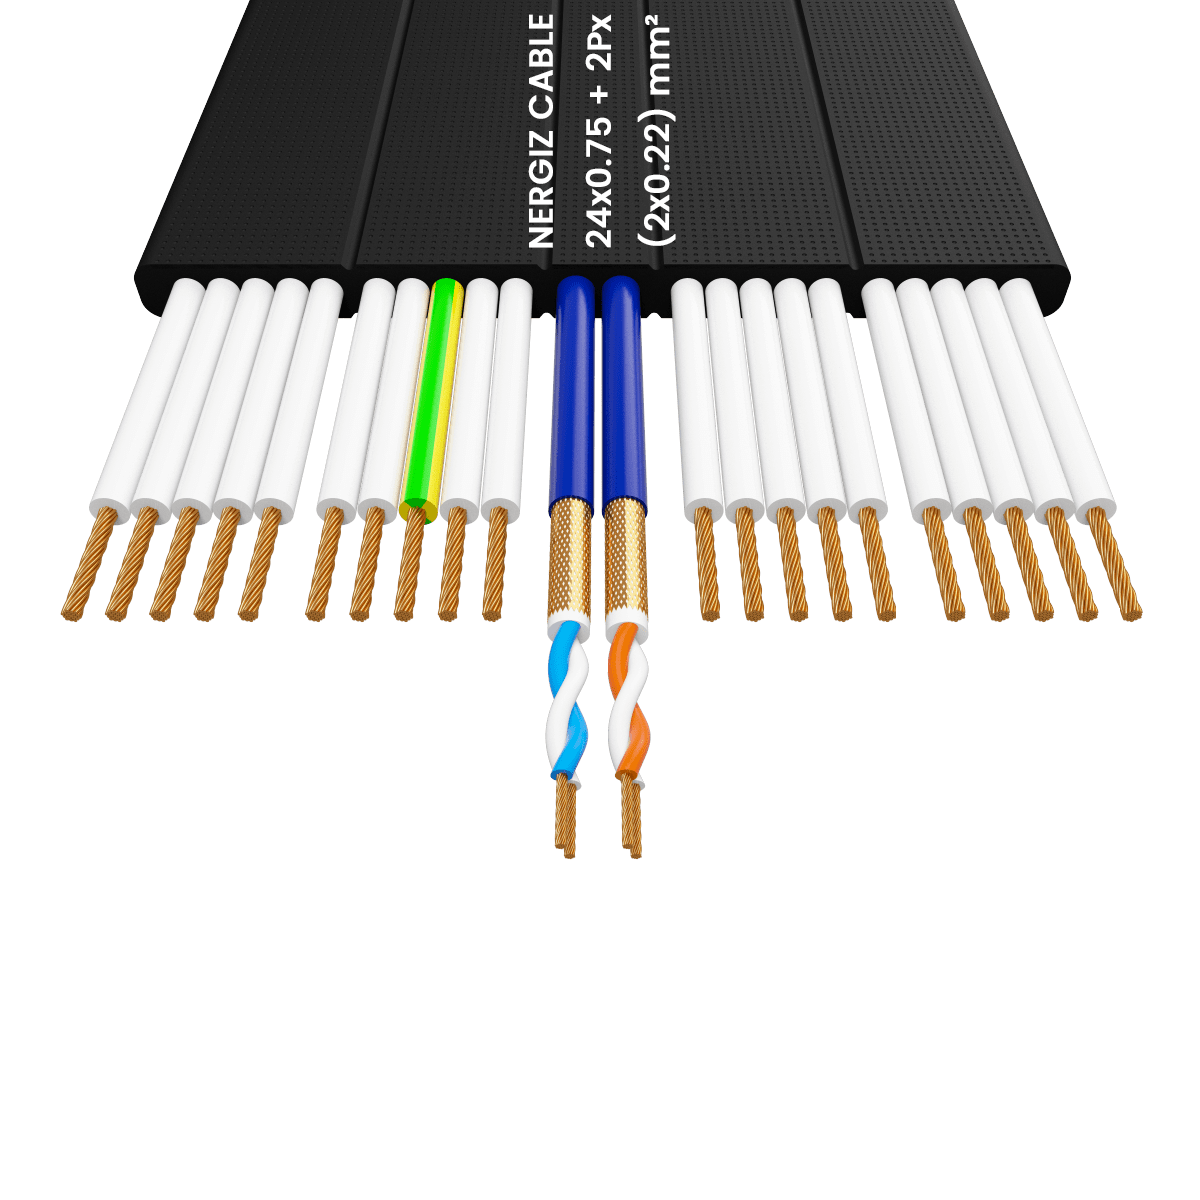 24x0.75 +2Px(2x0.22) mm² H05VVH6-F Foiled Elevator Cable